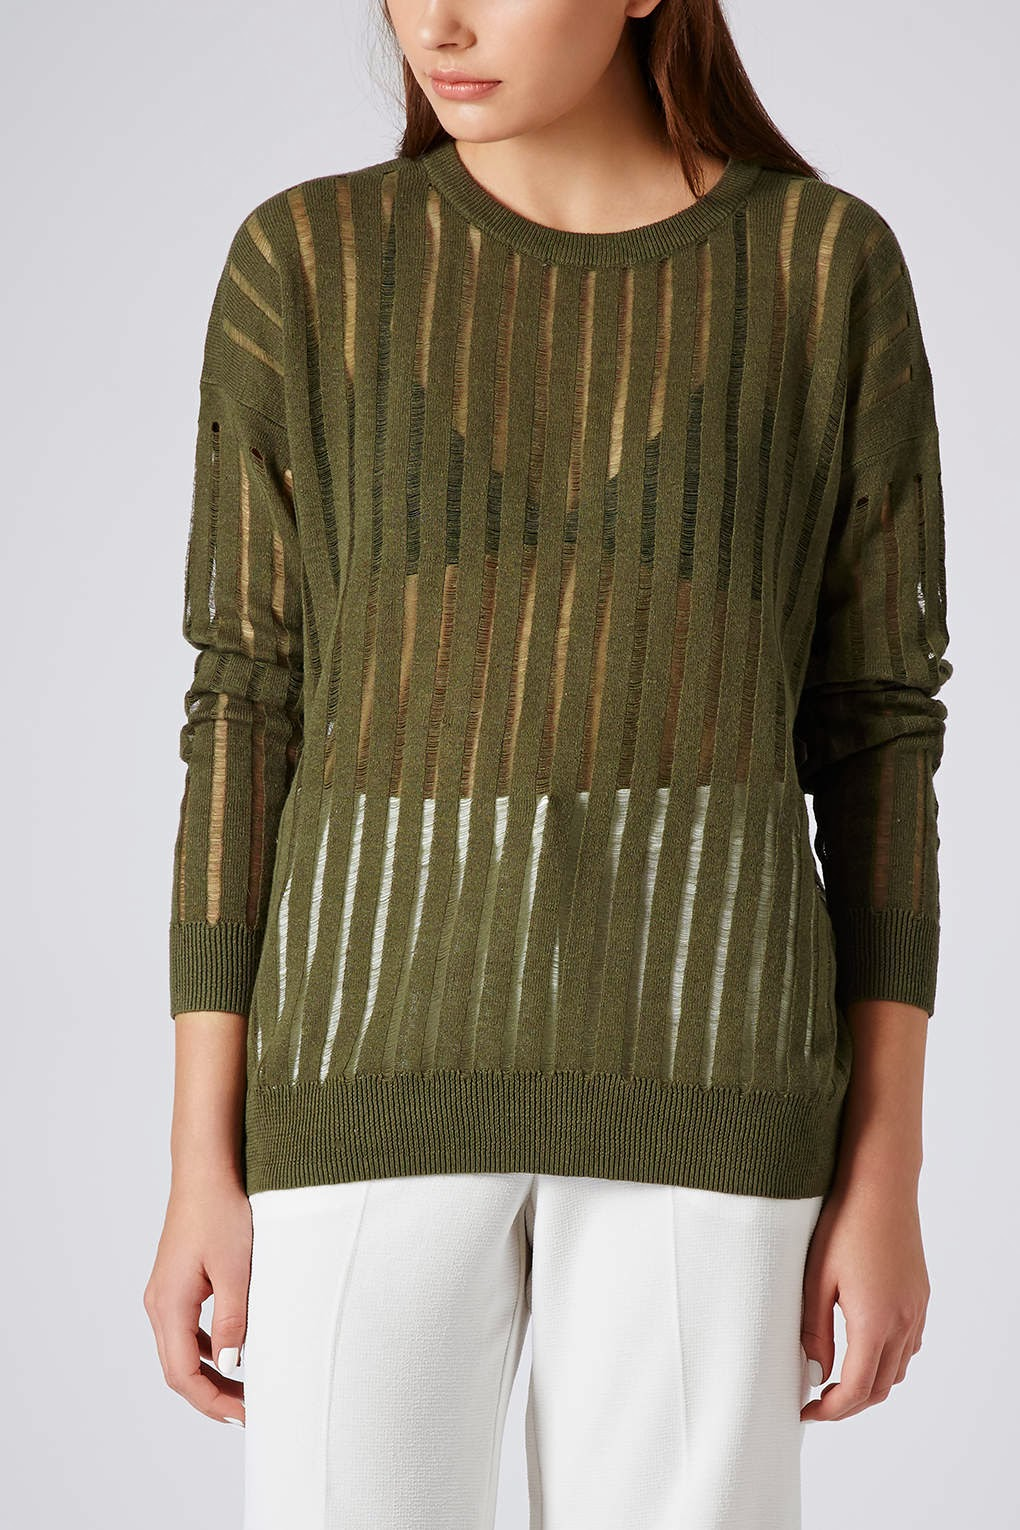 topshop green jumper